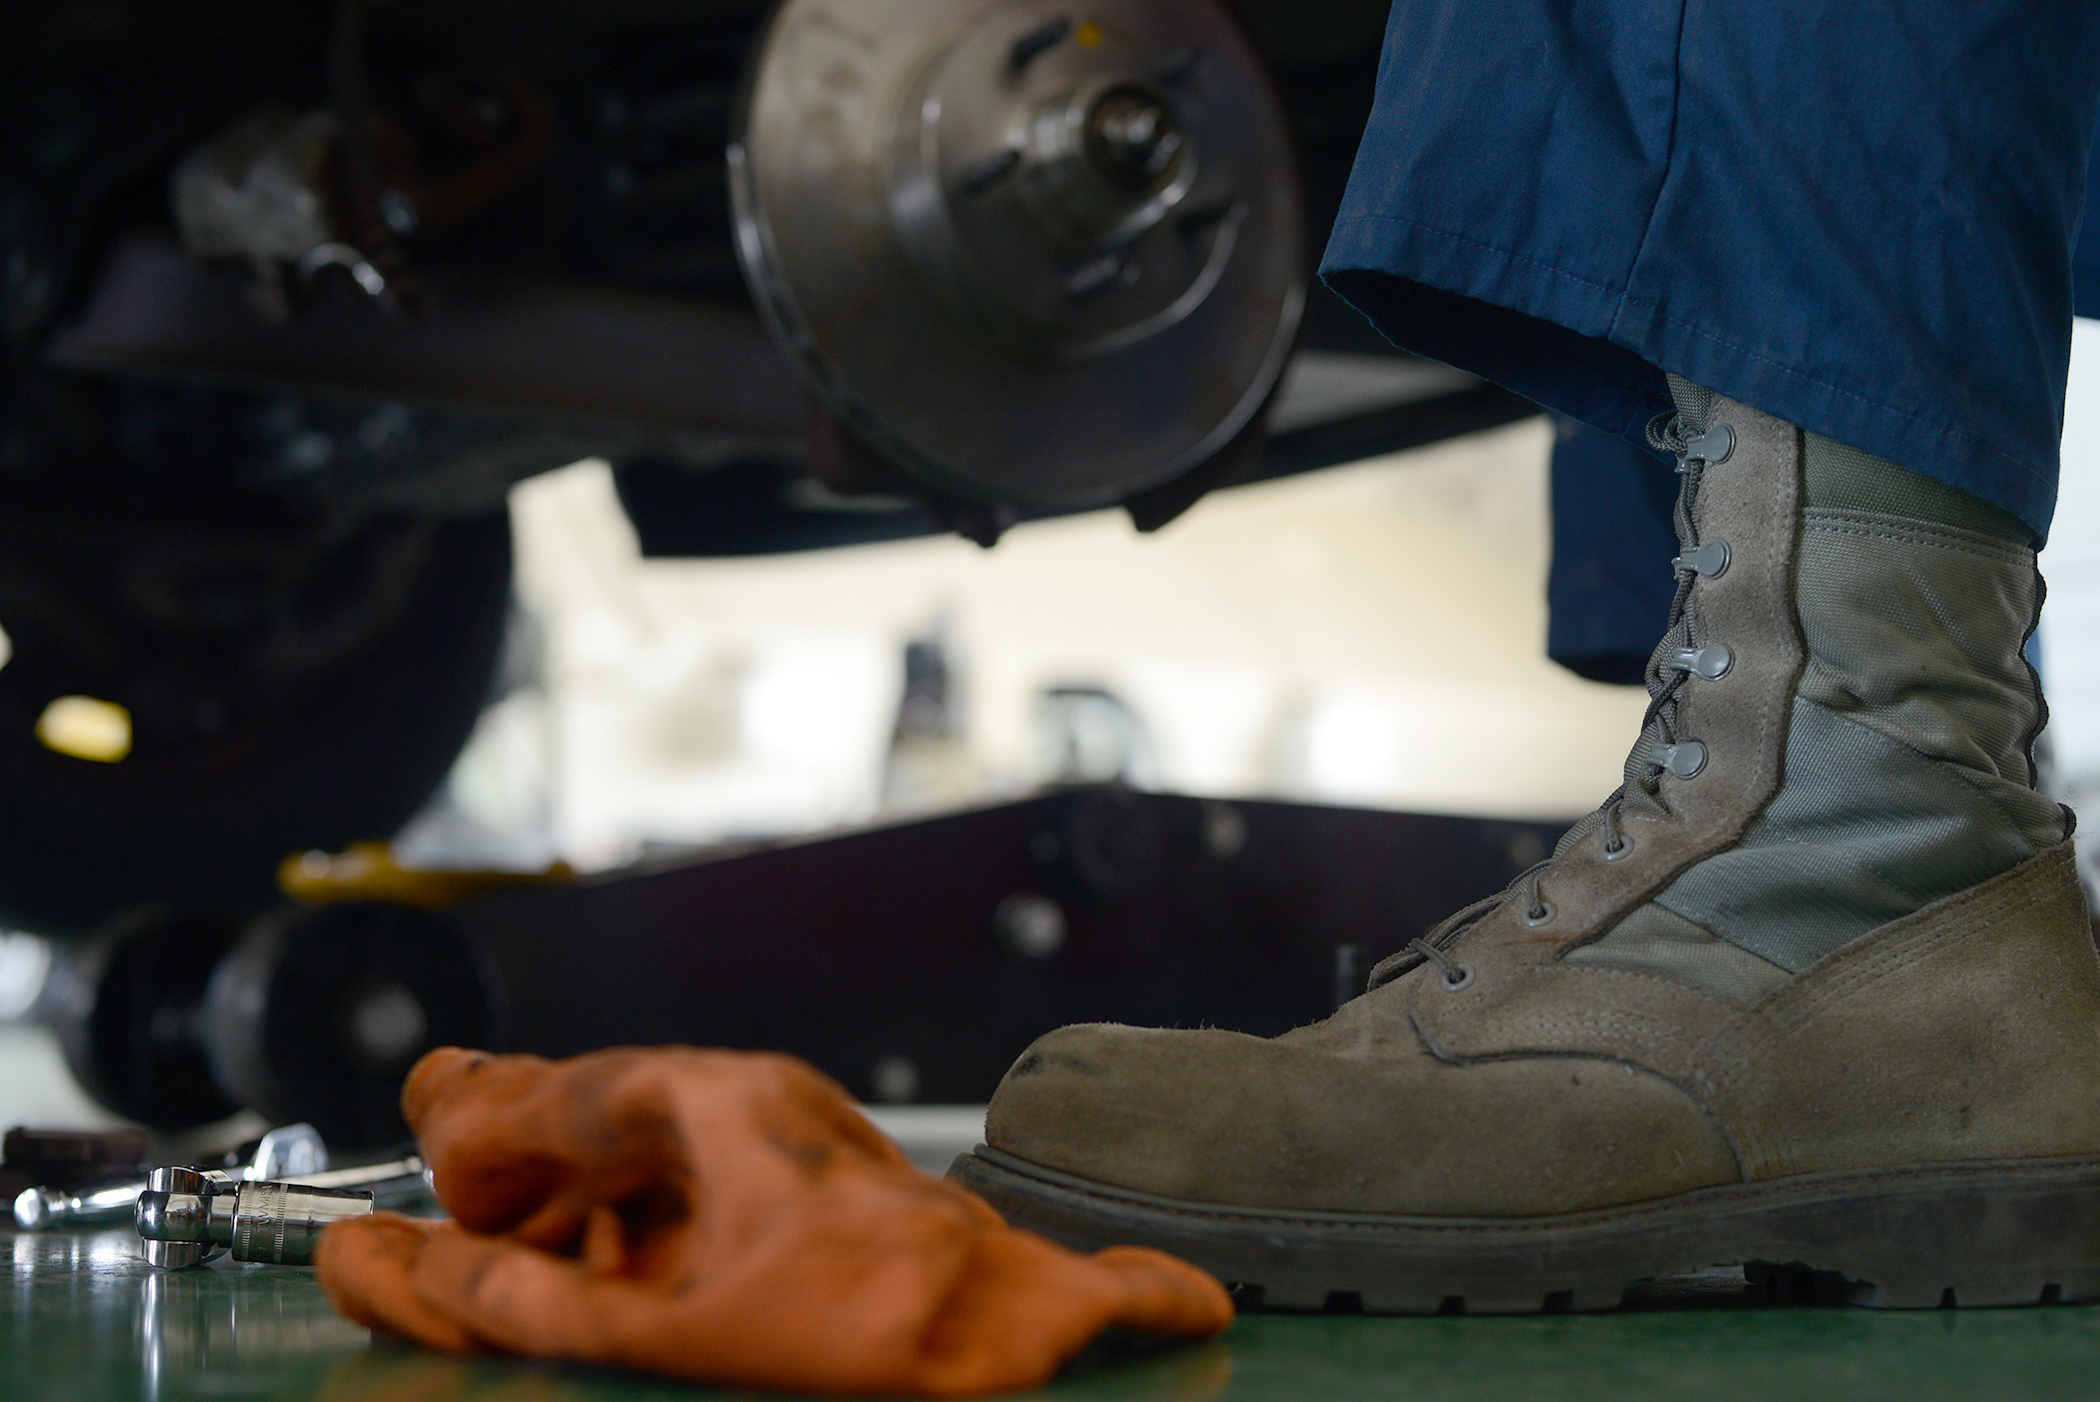 Senior Airman Brandon Higginbotham, 374th Logistics Readiness Squadron vehicle maintenance journeyman, performs maintenance on a government vehicle at Yokota Air Base, Japan, April 28, 2015. Higginbotham repairs and maintains approximately 89 vehicles per month. (U.S. Air Force photo by Airman 1st Class David C. Danford/Released)